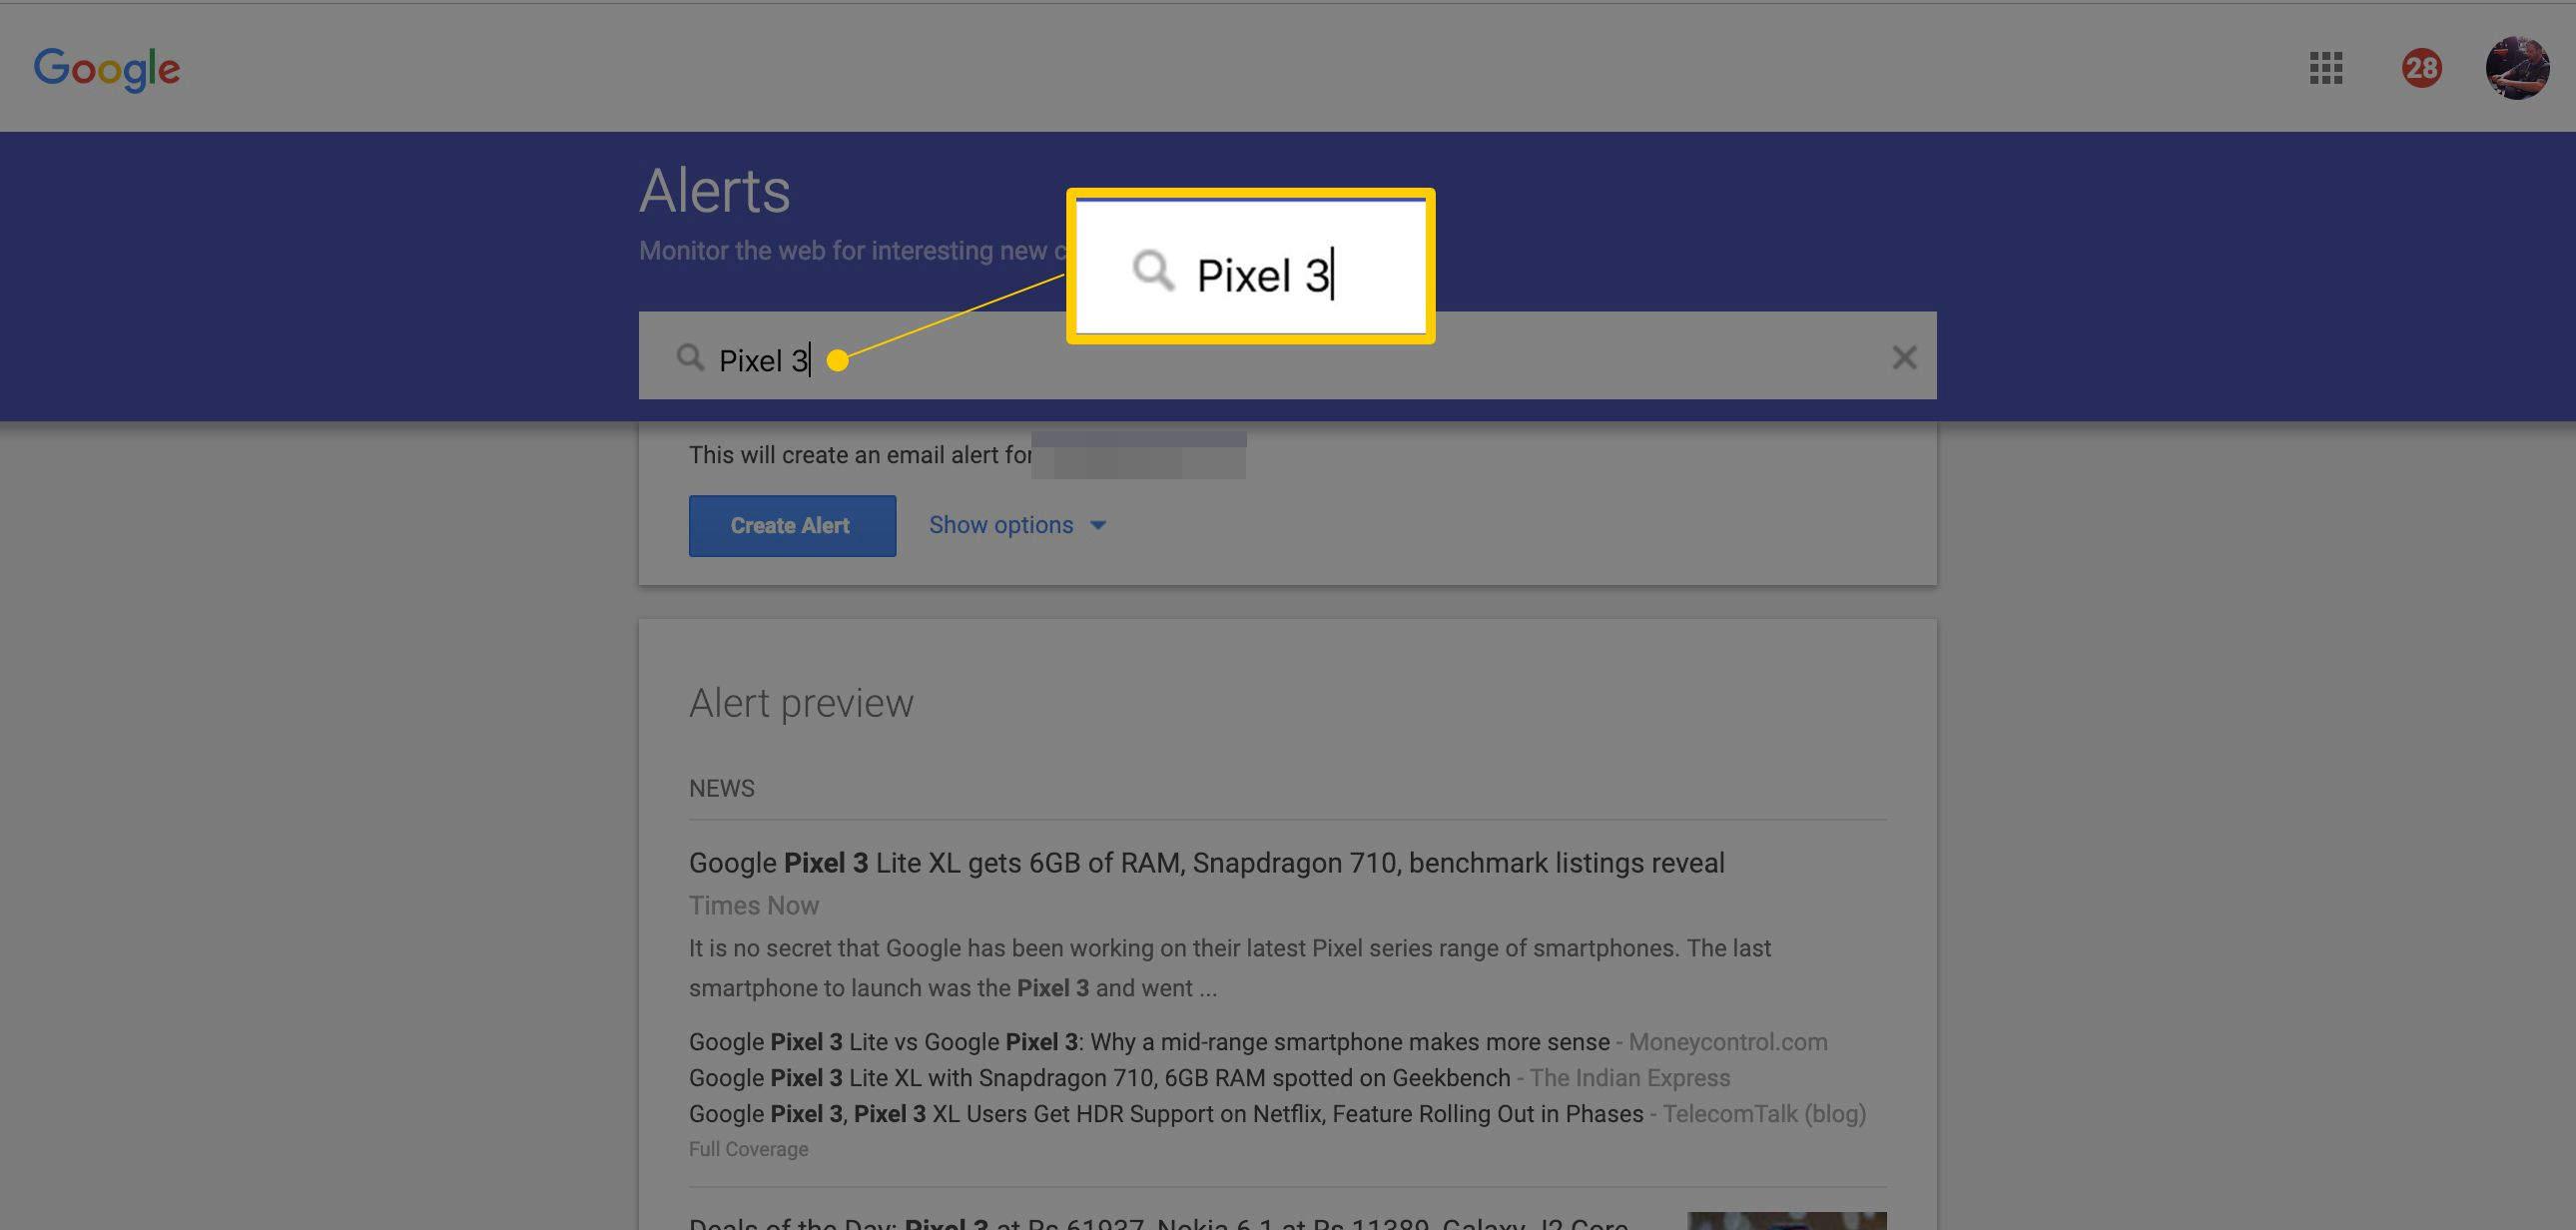 Google Alerts: What They Are & How to Make One